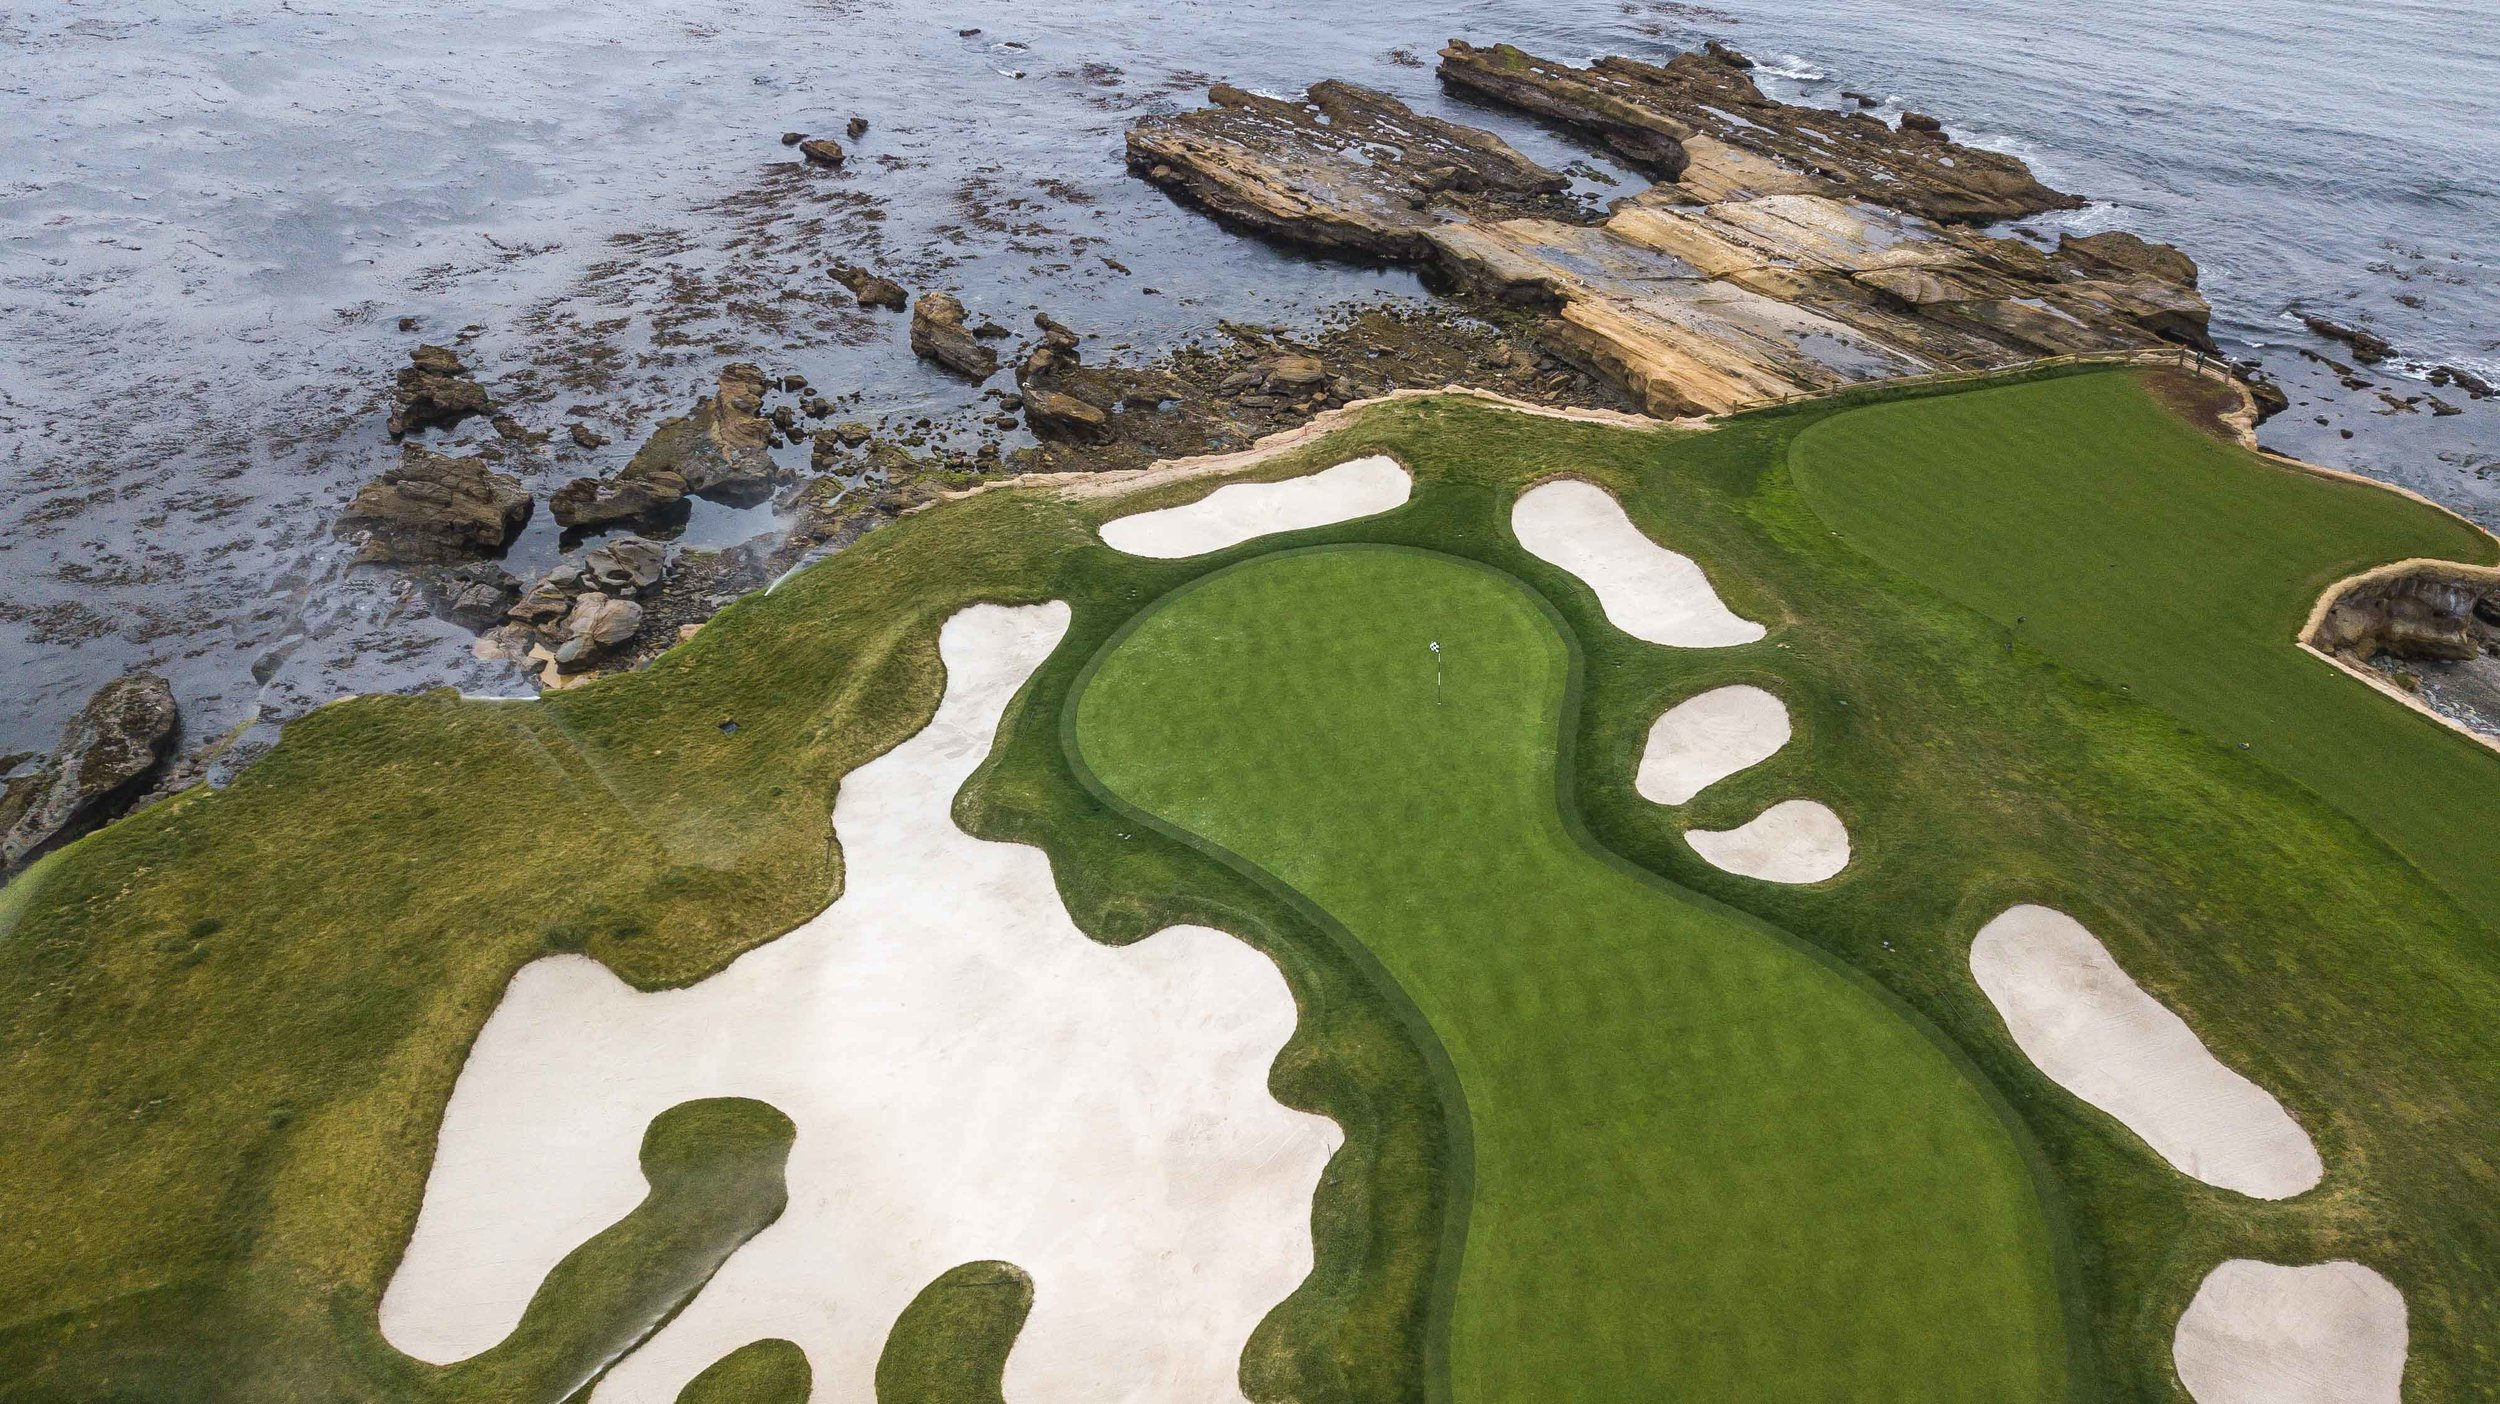 The 17th at Pebble Beach Golf Links